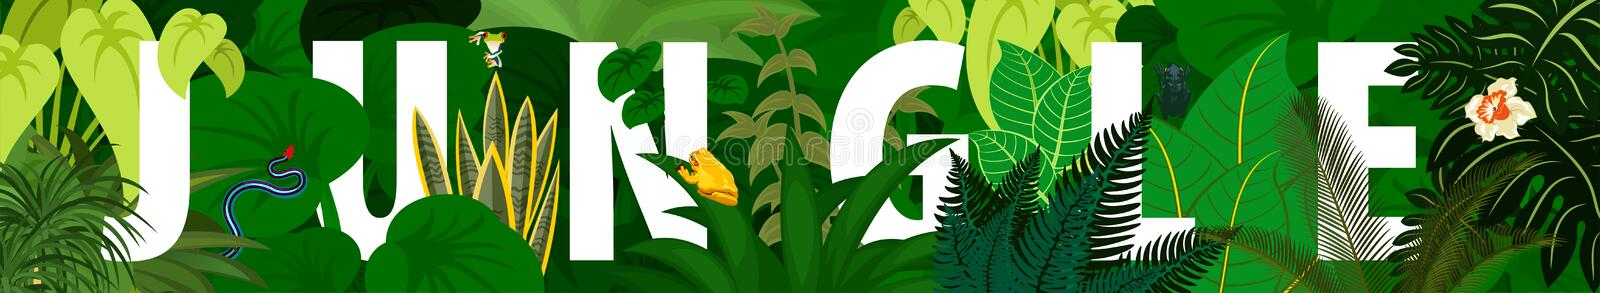 Tropical foliage. Floral background. Vector jungle rainforest banner royalty free illustration